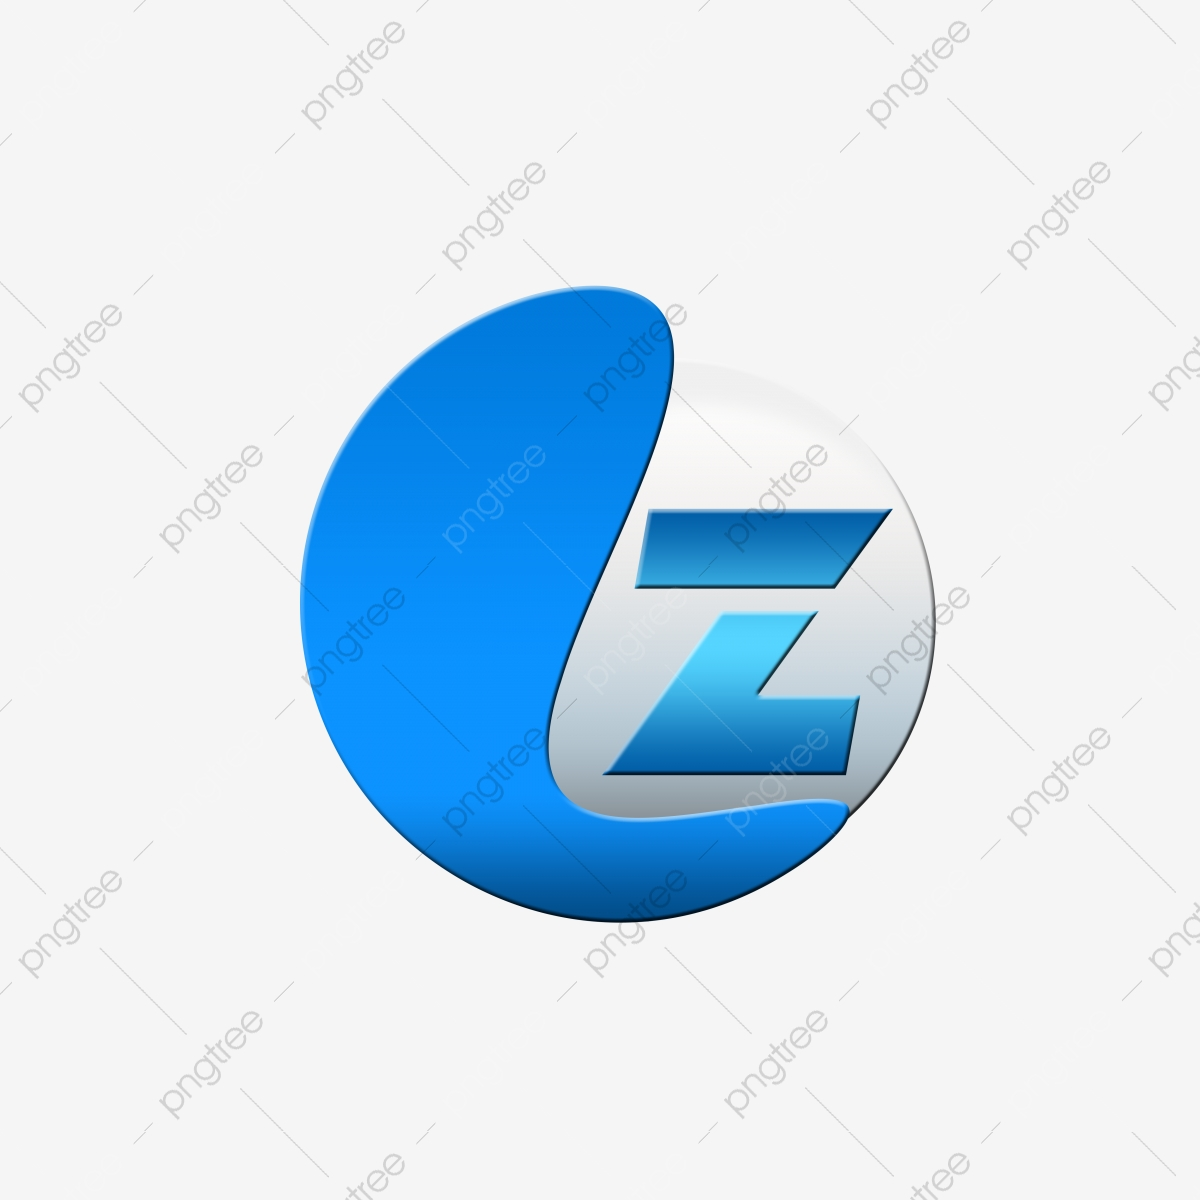 Z shaped banner clipart Transparent pictures on F.